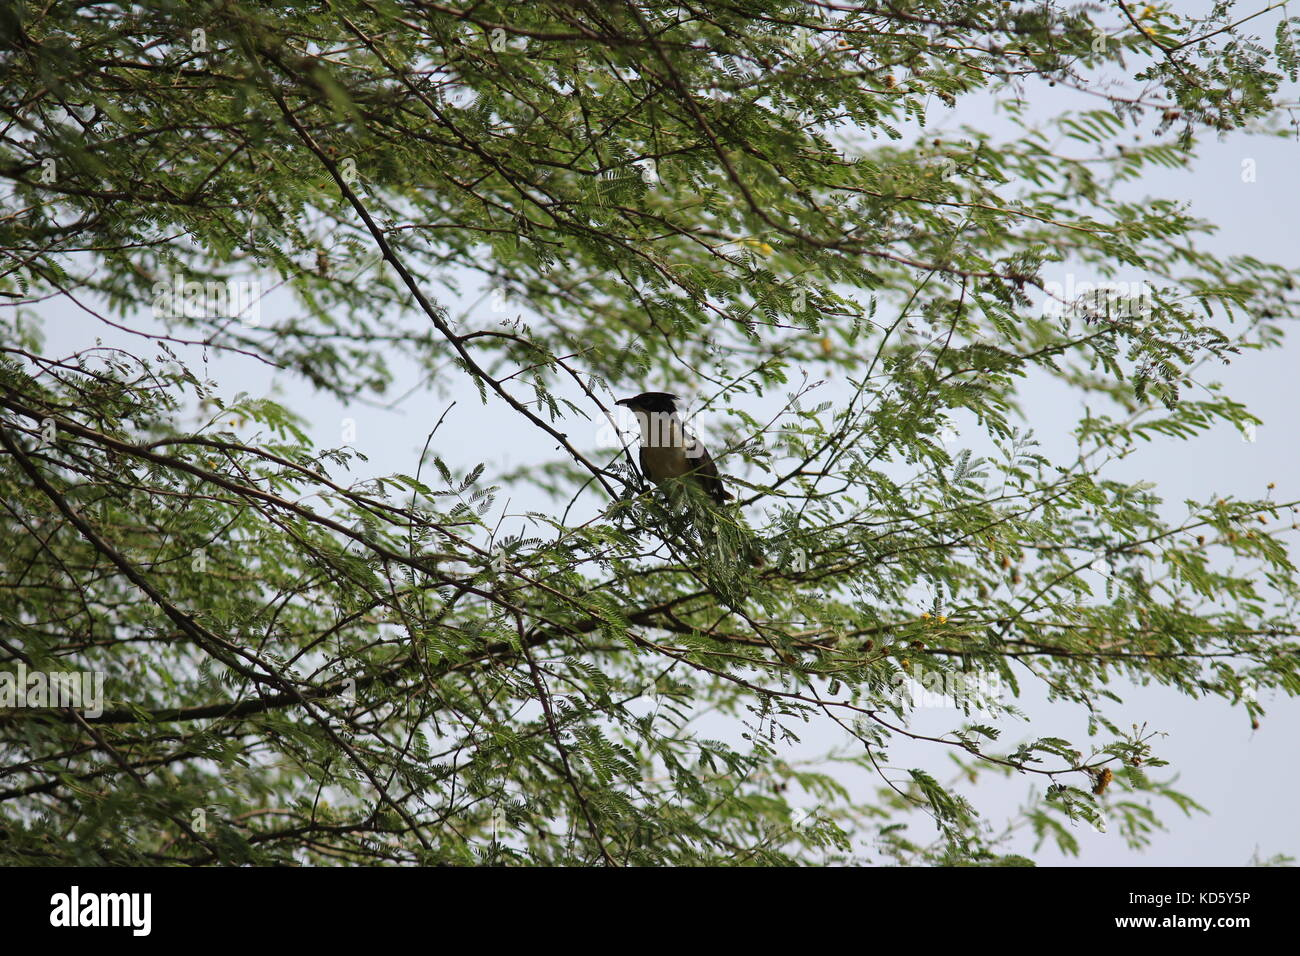 Bird sitting on the branch of a tree at Sultanpur National Park, Gurugram, Haryana, India - Stock Image